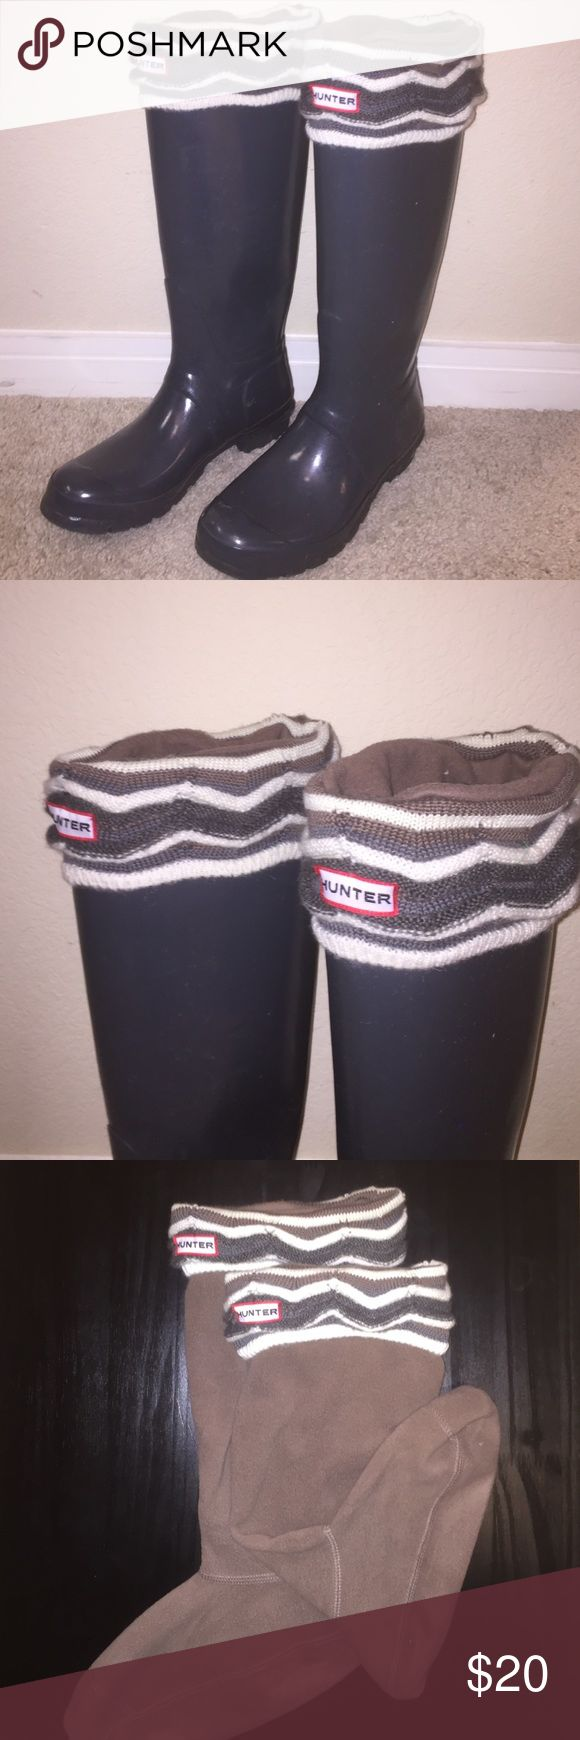 Chevron Hunter Boot Liners Brown chevron hunter boot liners. Only worn once in really good condition. Size ML (8-10 shoe) Hunter Boots Shoes Winter & Rain Boots